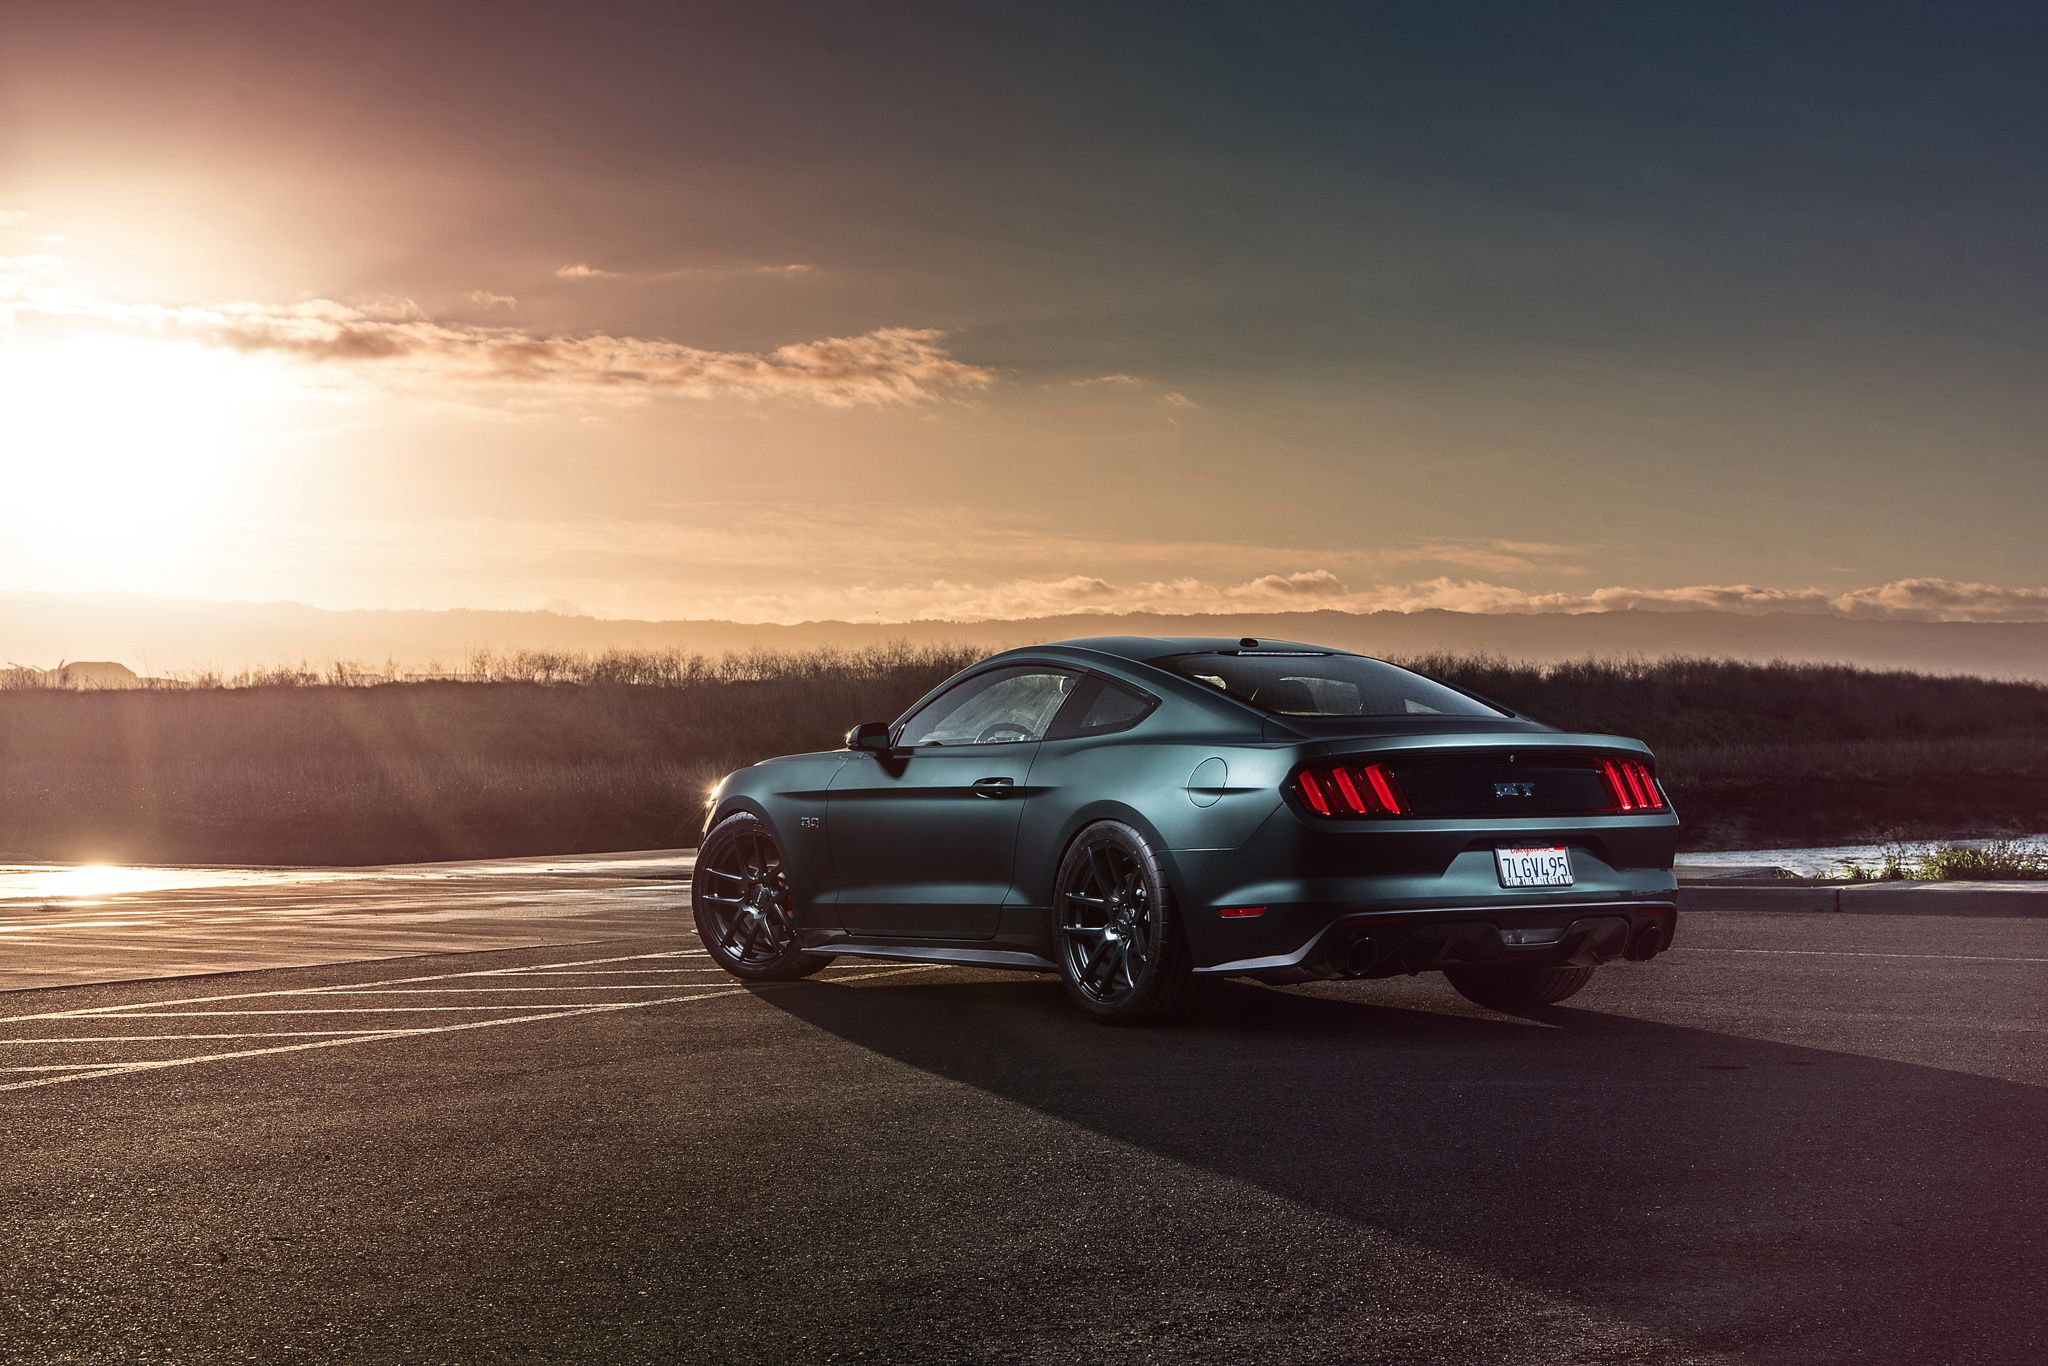 Ford Mustang Gt Wallpaper For Iphone Ford Mustang Wallpaper